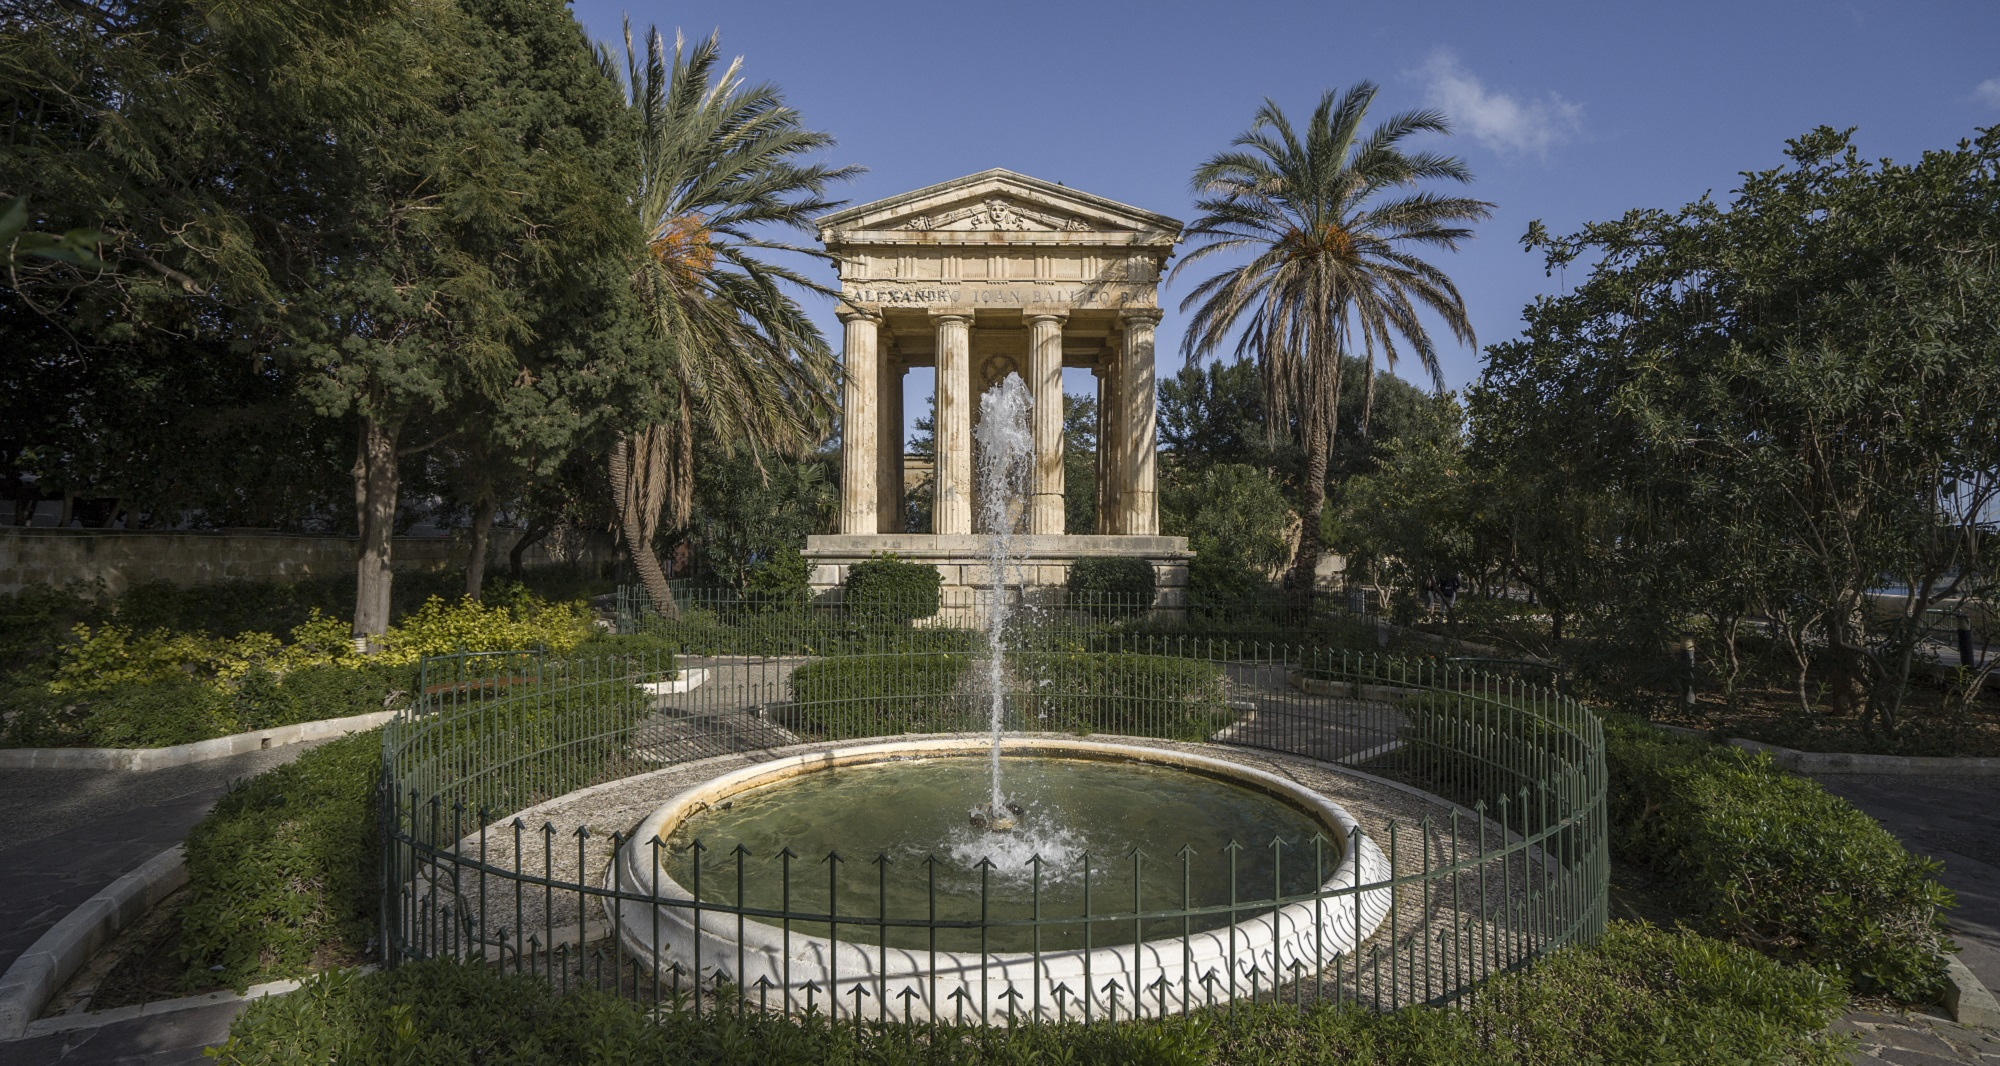 malta Greek Style Temple Portico surrounded by Palm Trees & Decorative Fountain